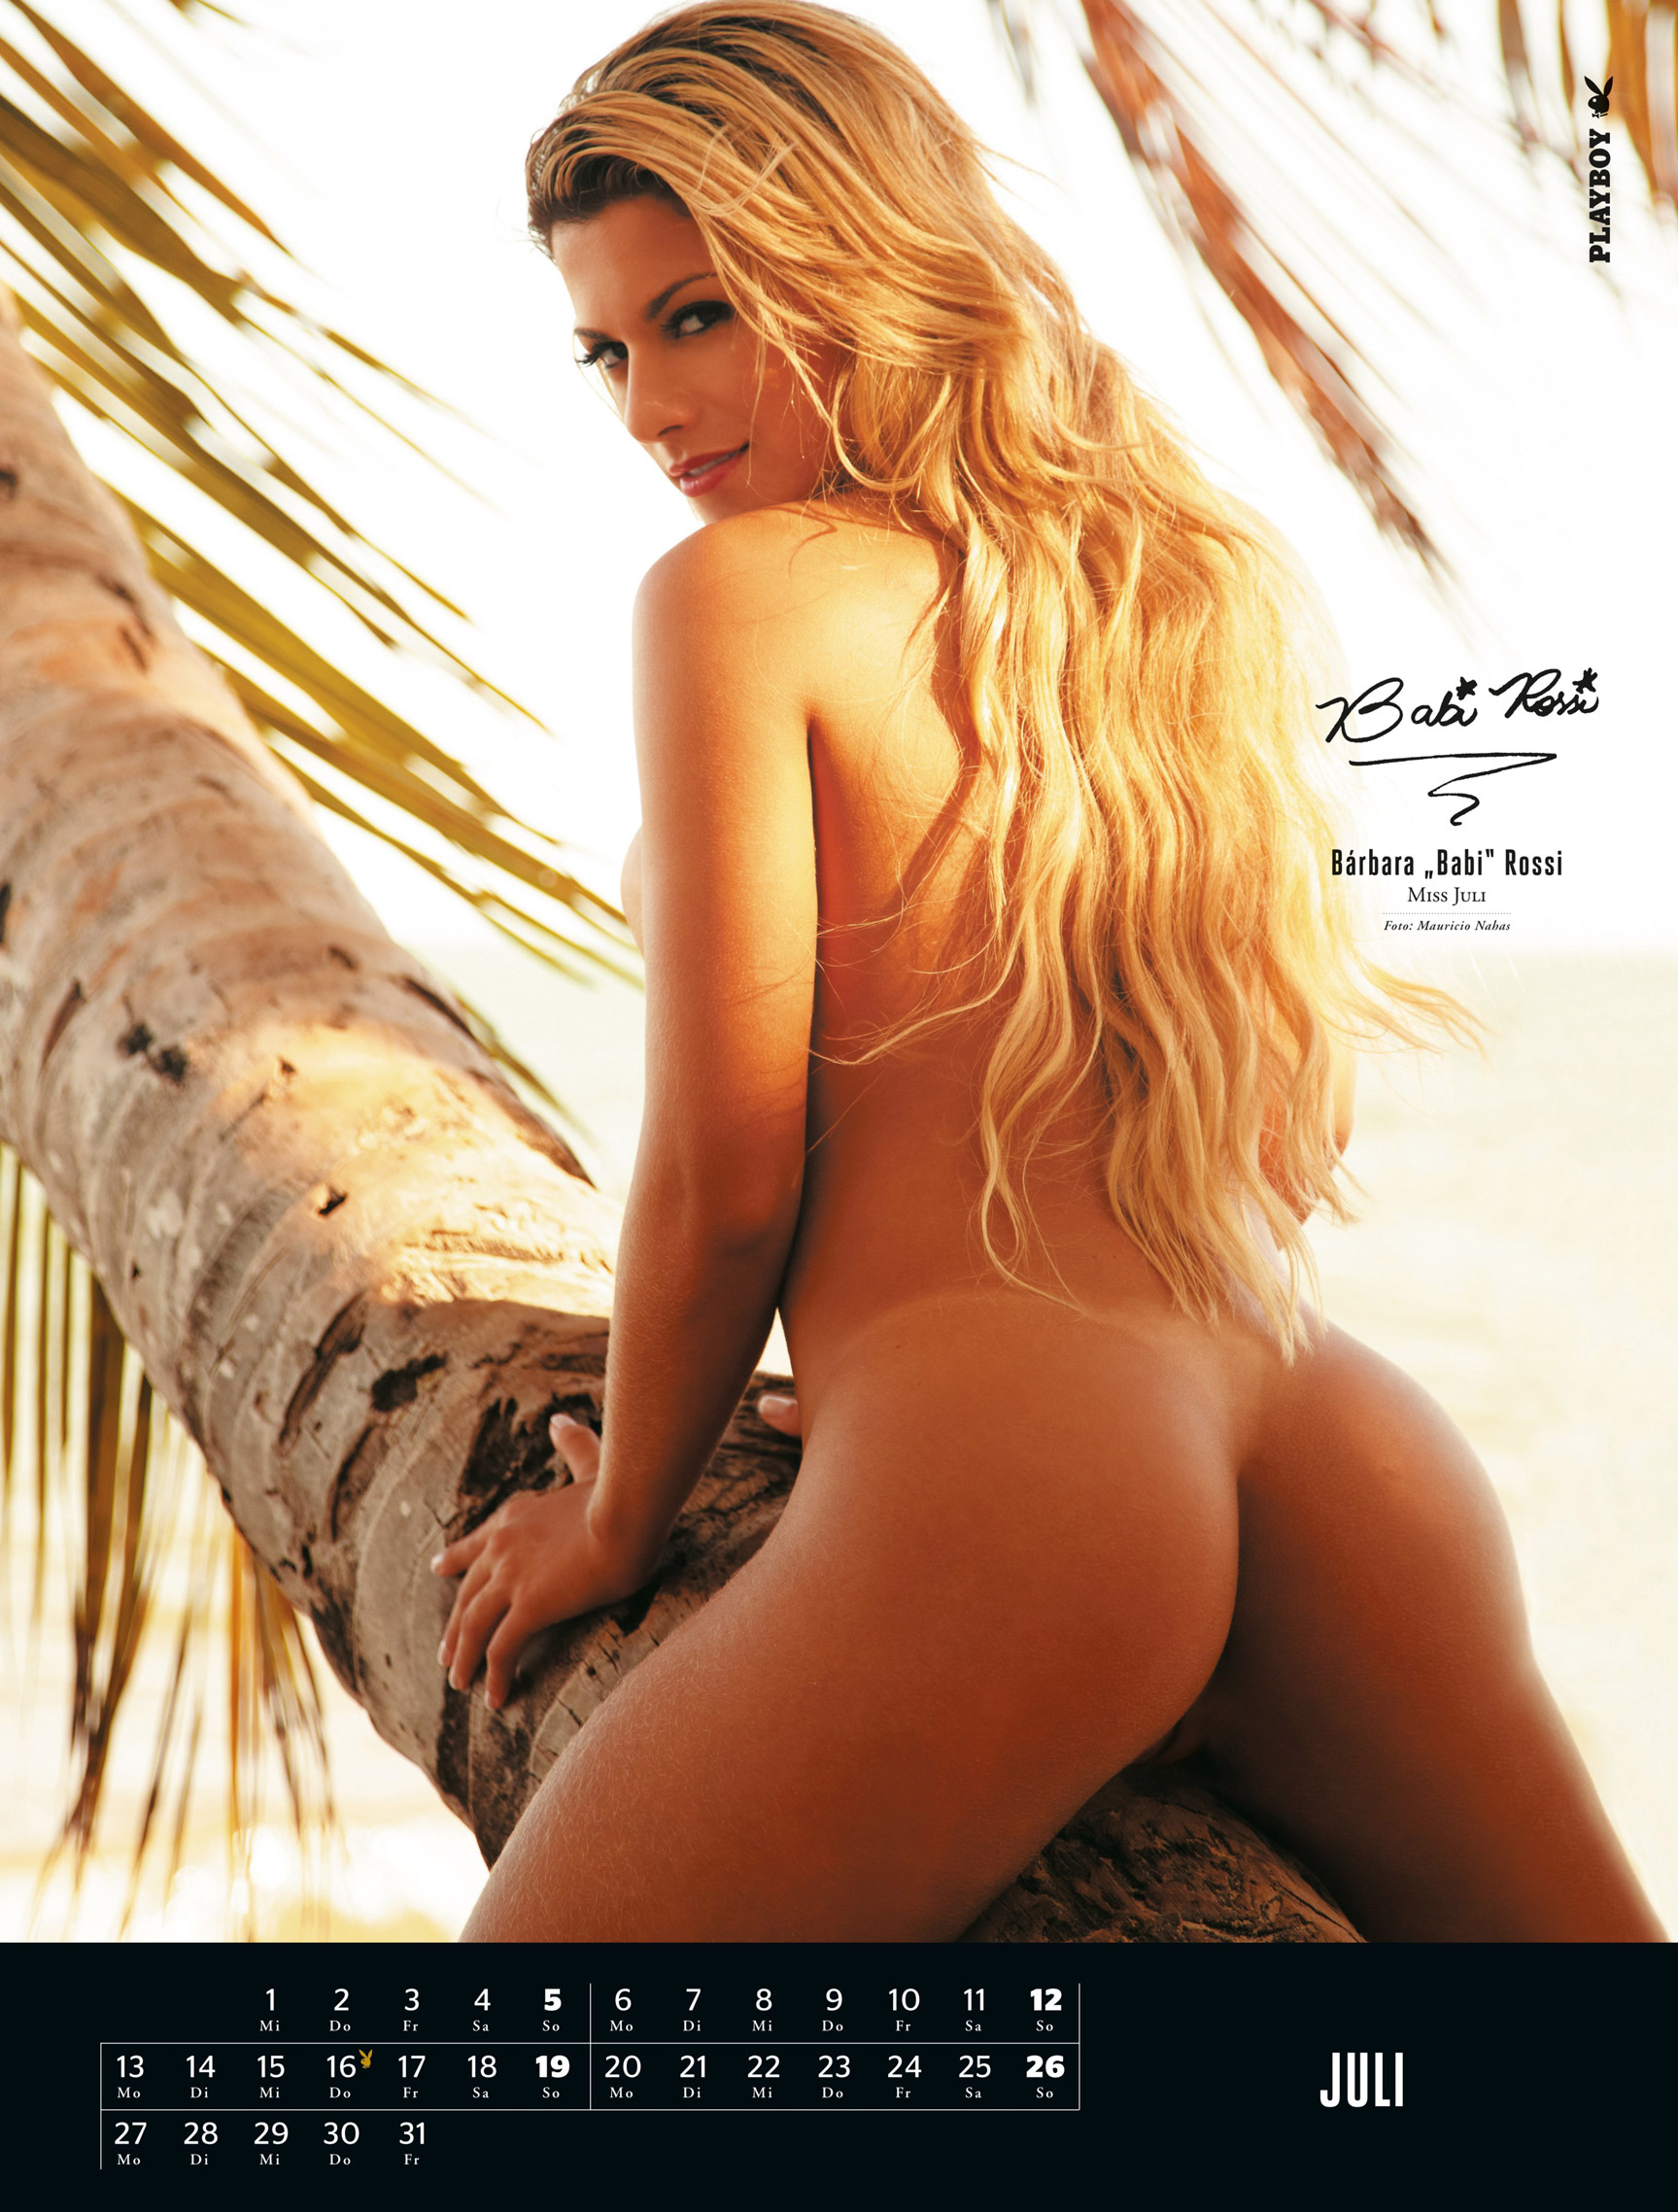 ����������� ��������� Playboy Germany Playmate Calendar 2015 - Miss July 2014 Barbara Babi Rossi